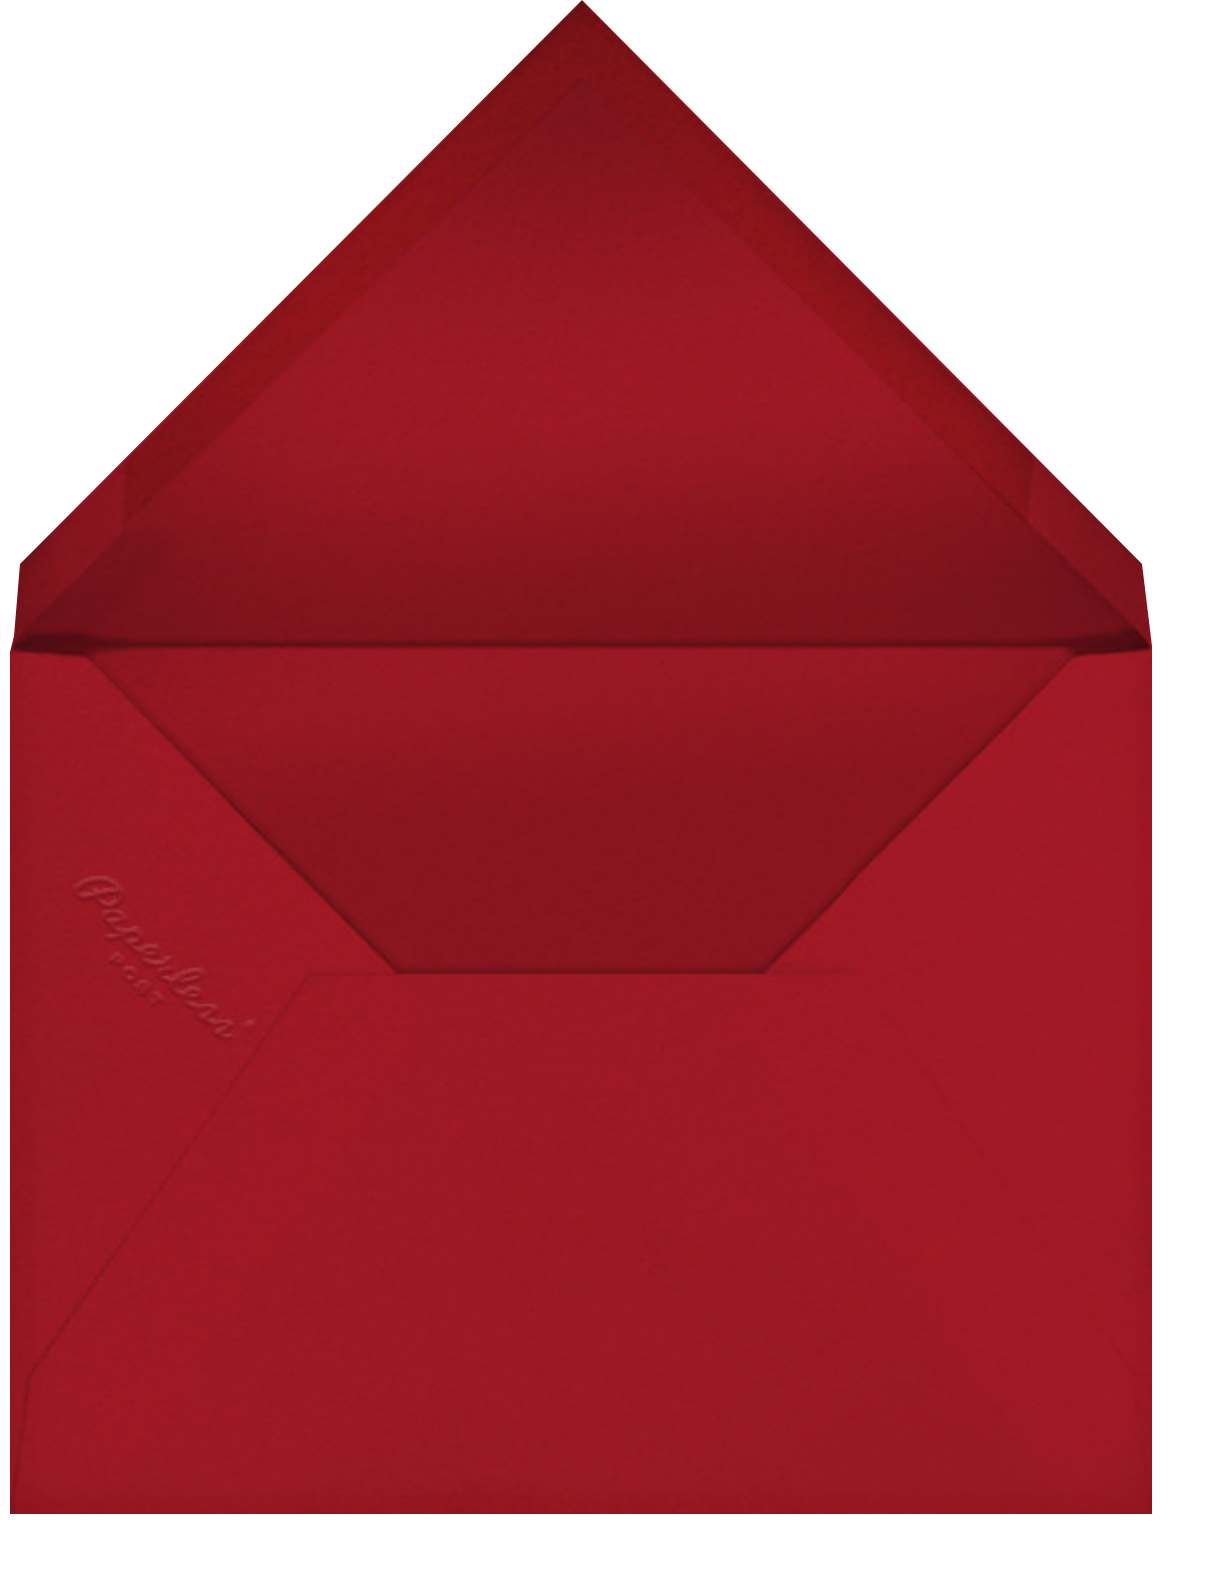 Carnaby (Tall) - Red - Paperless Post - Canada Day - envelope back